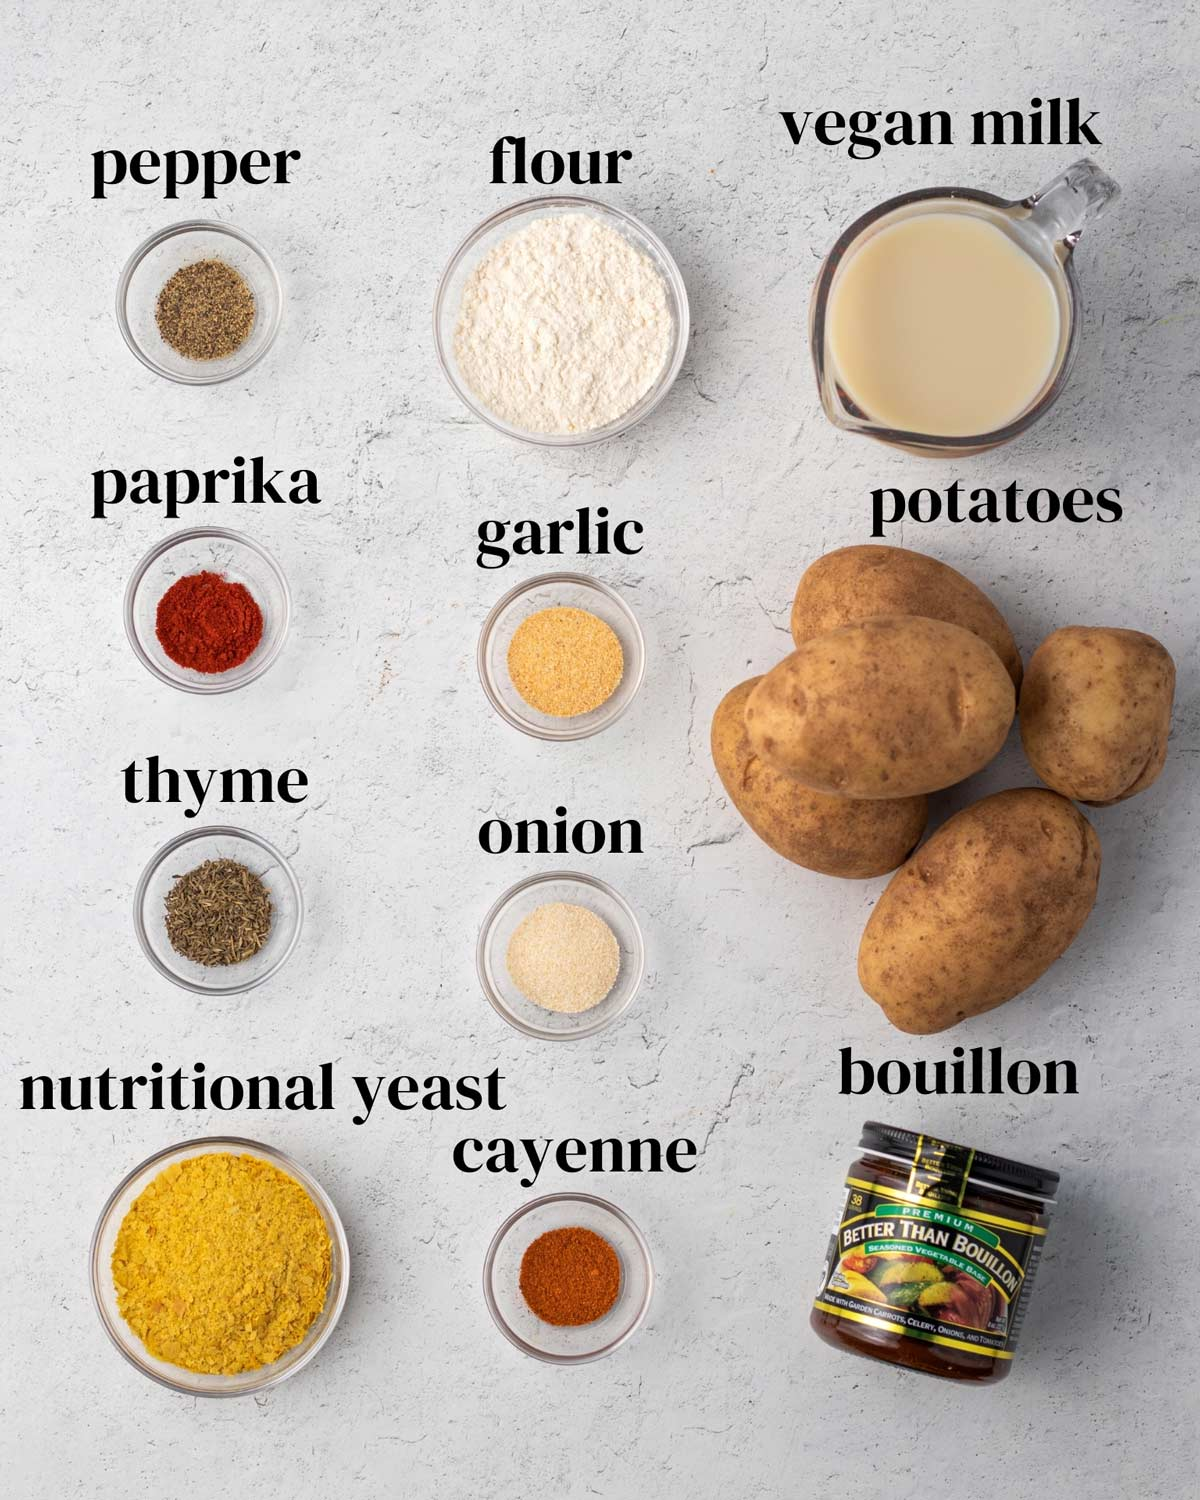 Ingredients for dairy-free scalloped potato casserole laid out on a surface.